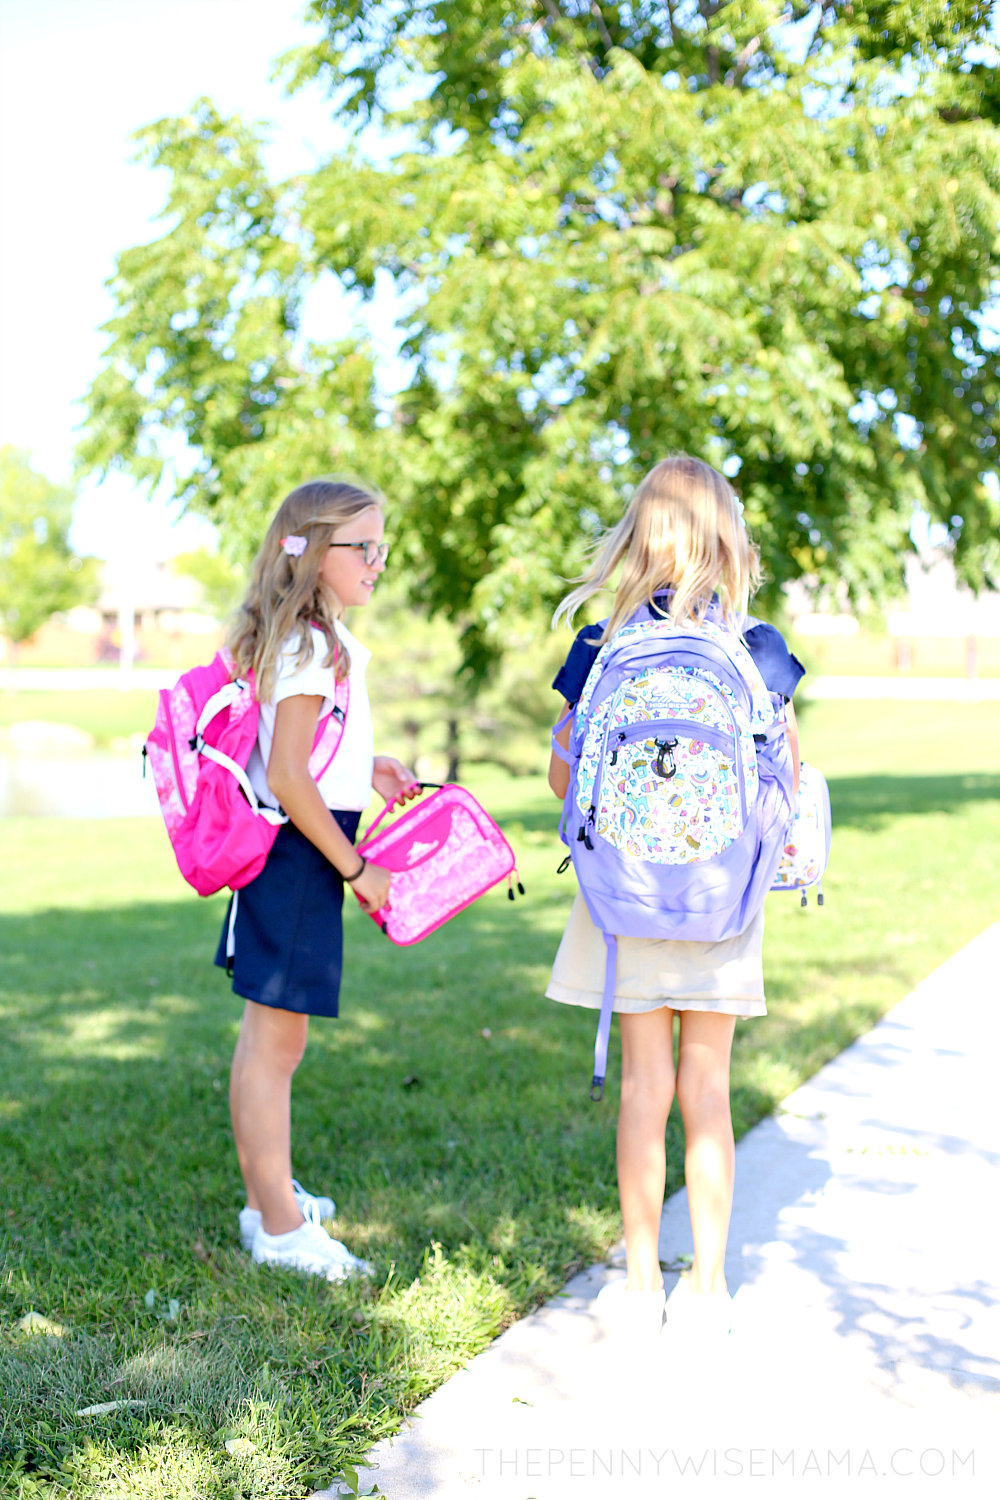 Save Big on Back to School Outfits with Ibotta